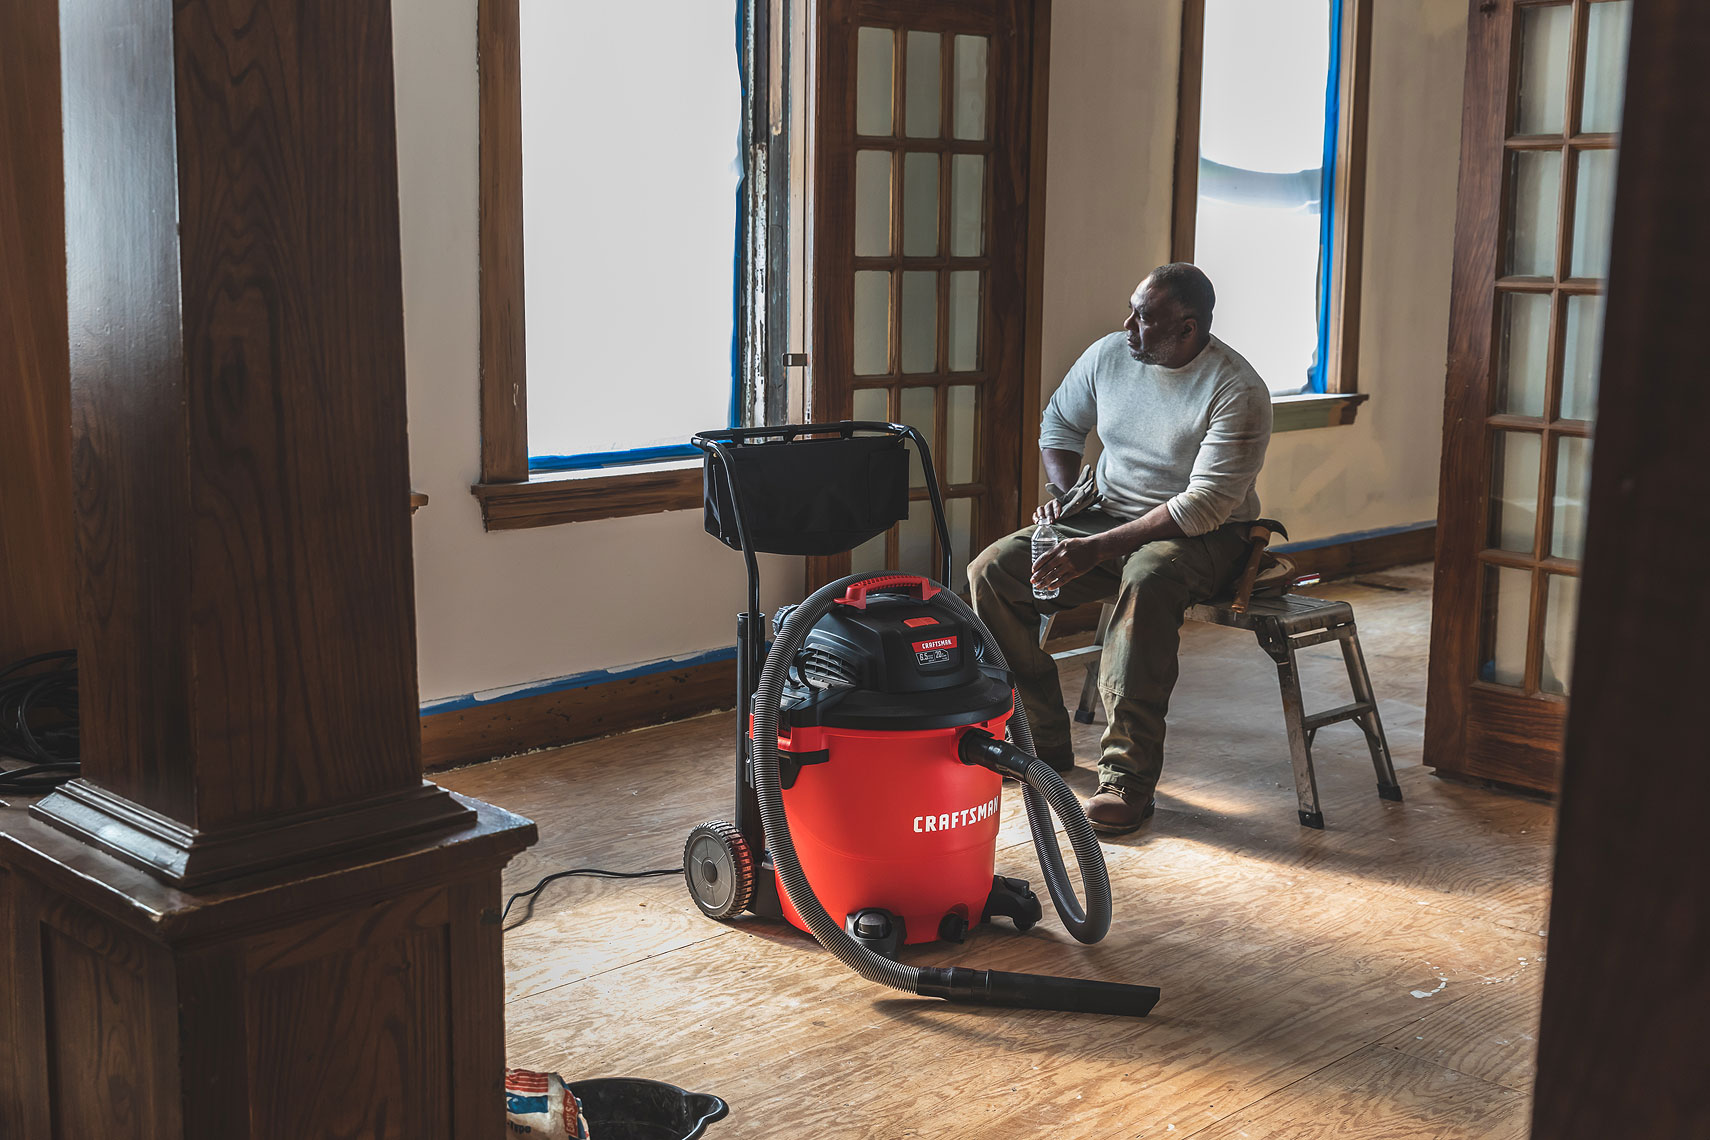 Craftsman Tools 20 Gallon Wet/Dry Vacuum | Man taking a break during a room remodel | John Fedele Product Photography